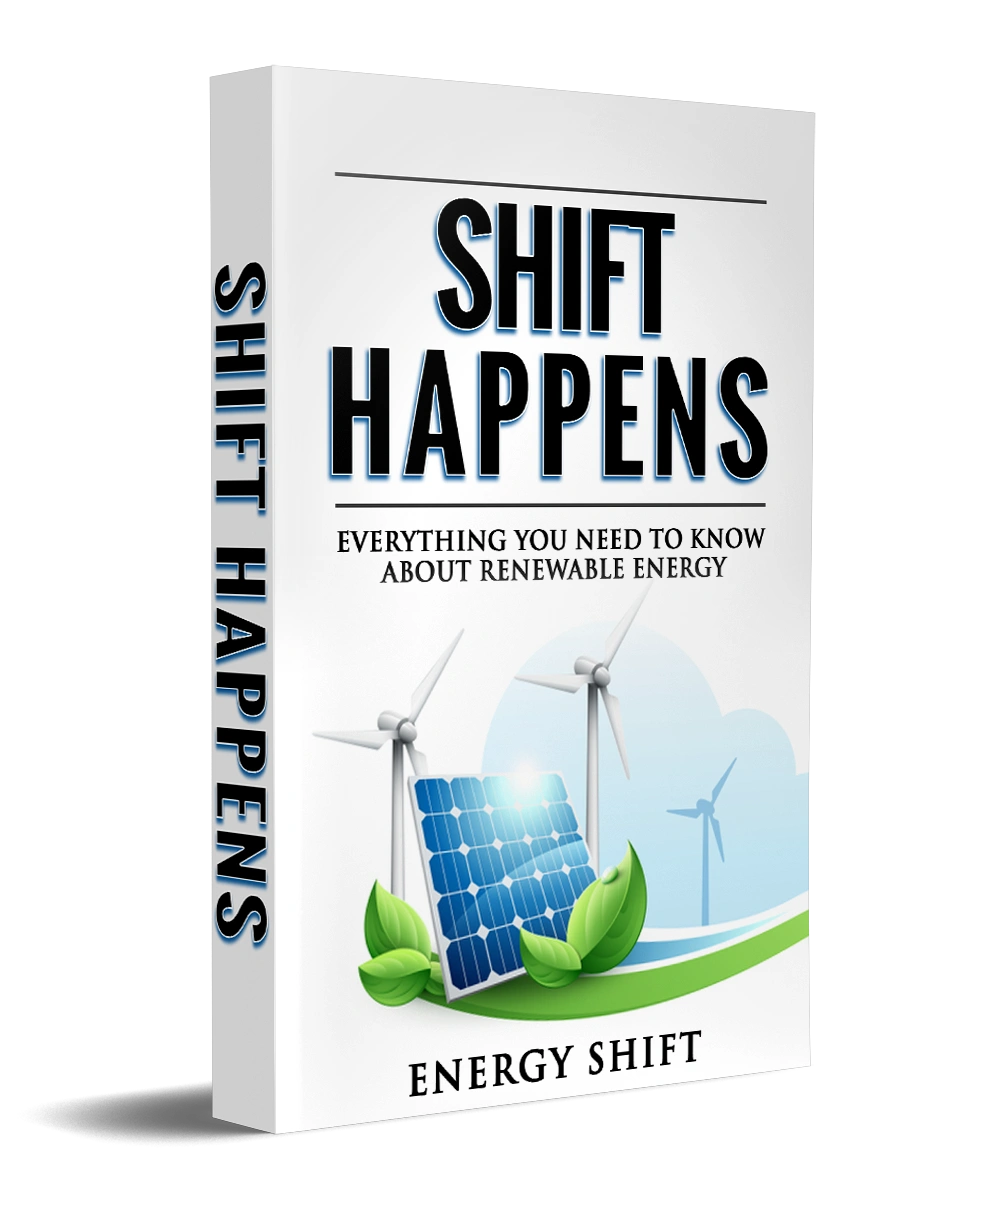 Energy Shift E-book, Free energy ebook, Free renewable Energy ebook